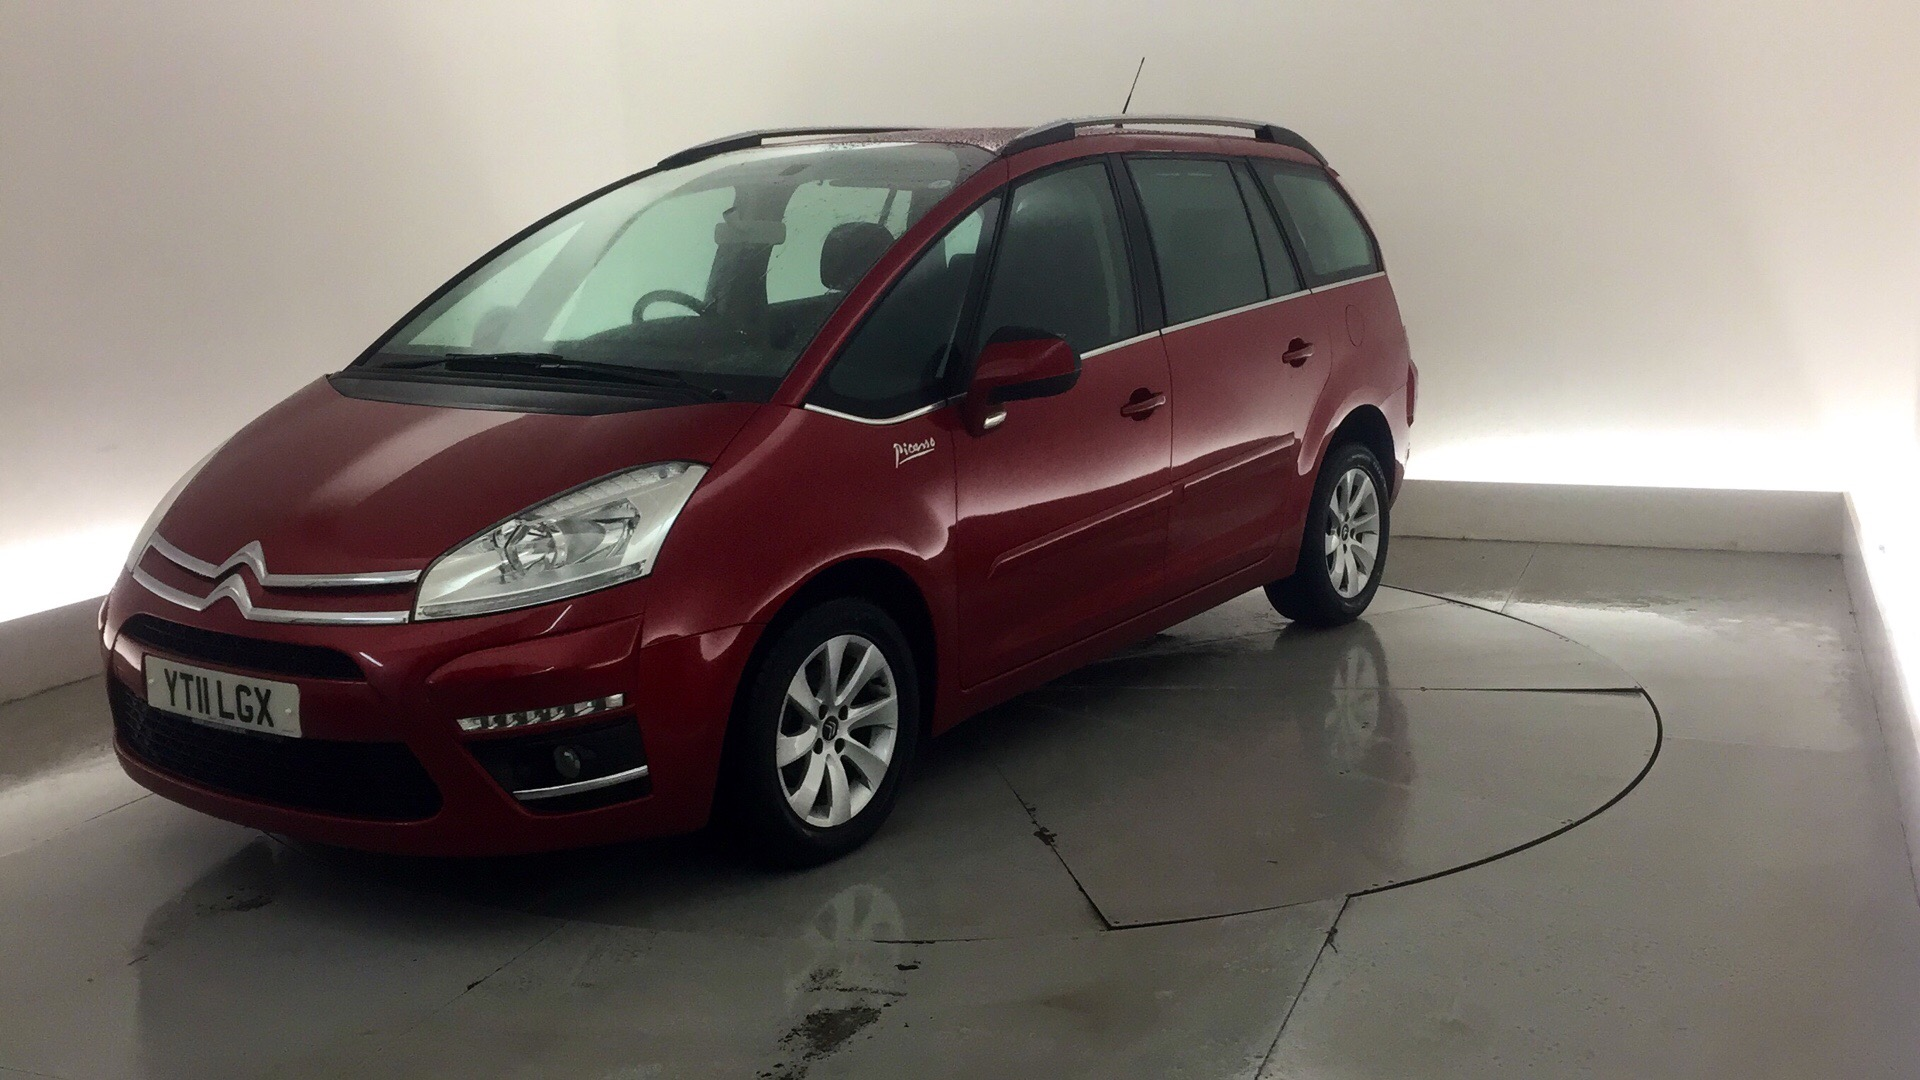 used citroen c4 grand picasso 1 6 hdi vtr 5dr red yt11lgx swindon. Black Bedroom Furniture Sets. Home Design Ideas